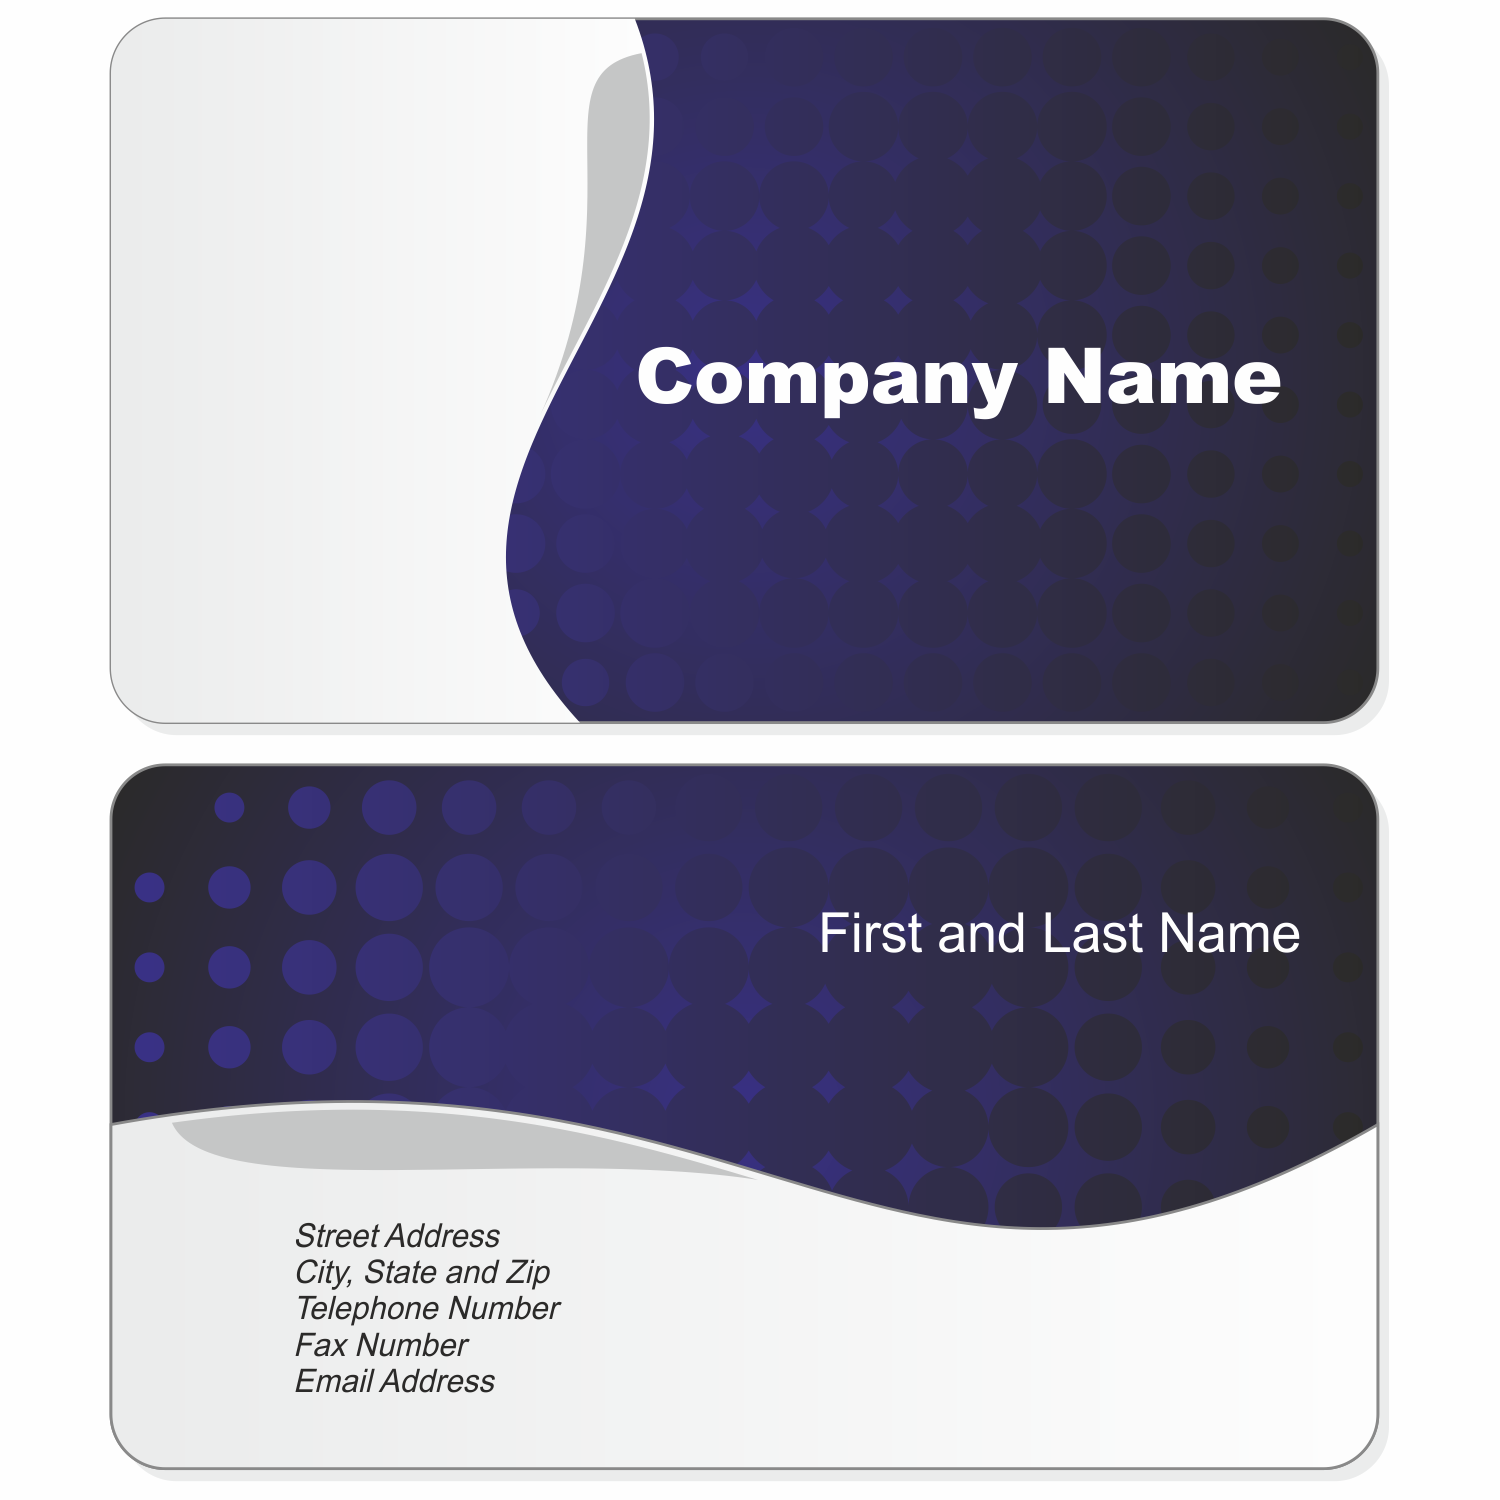 Calling Card Template Png 7 Png Image